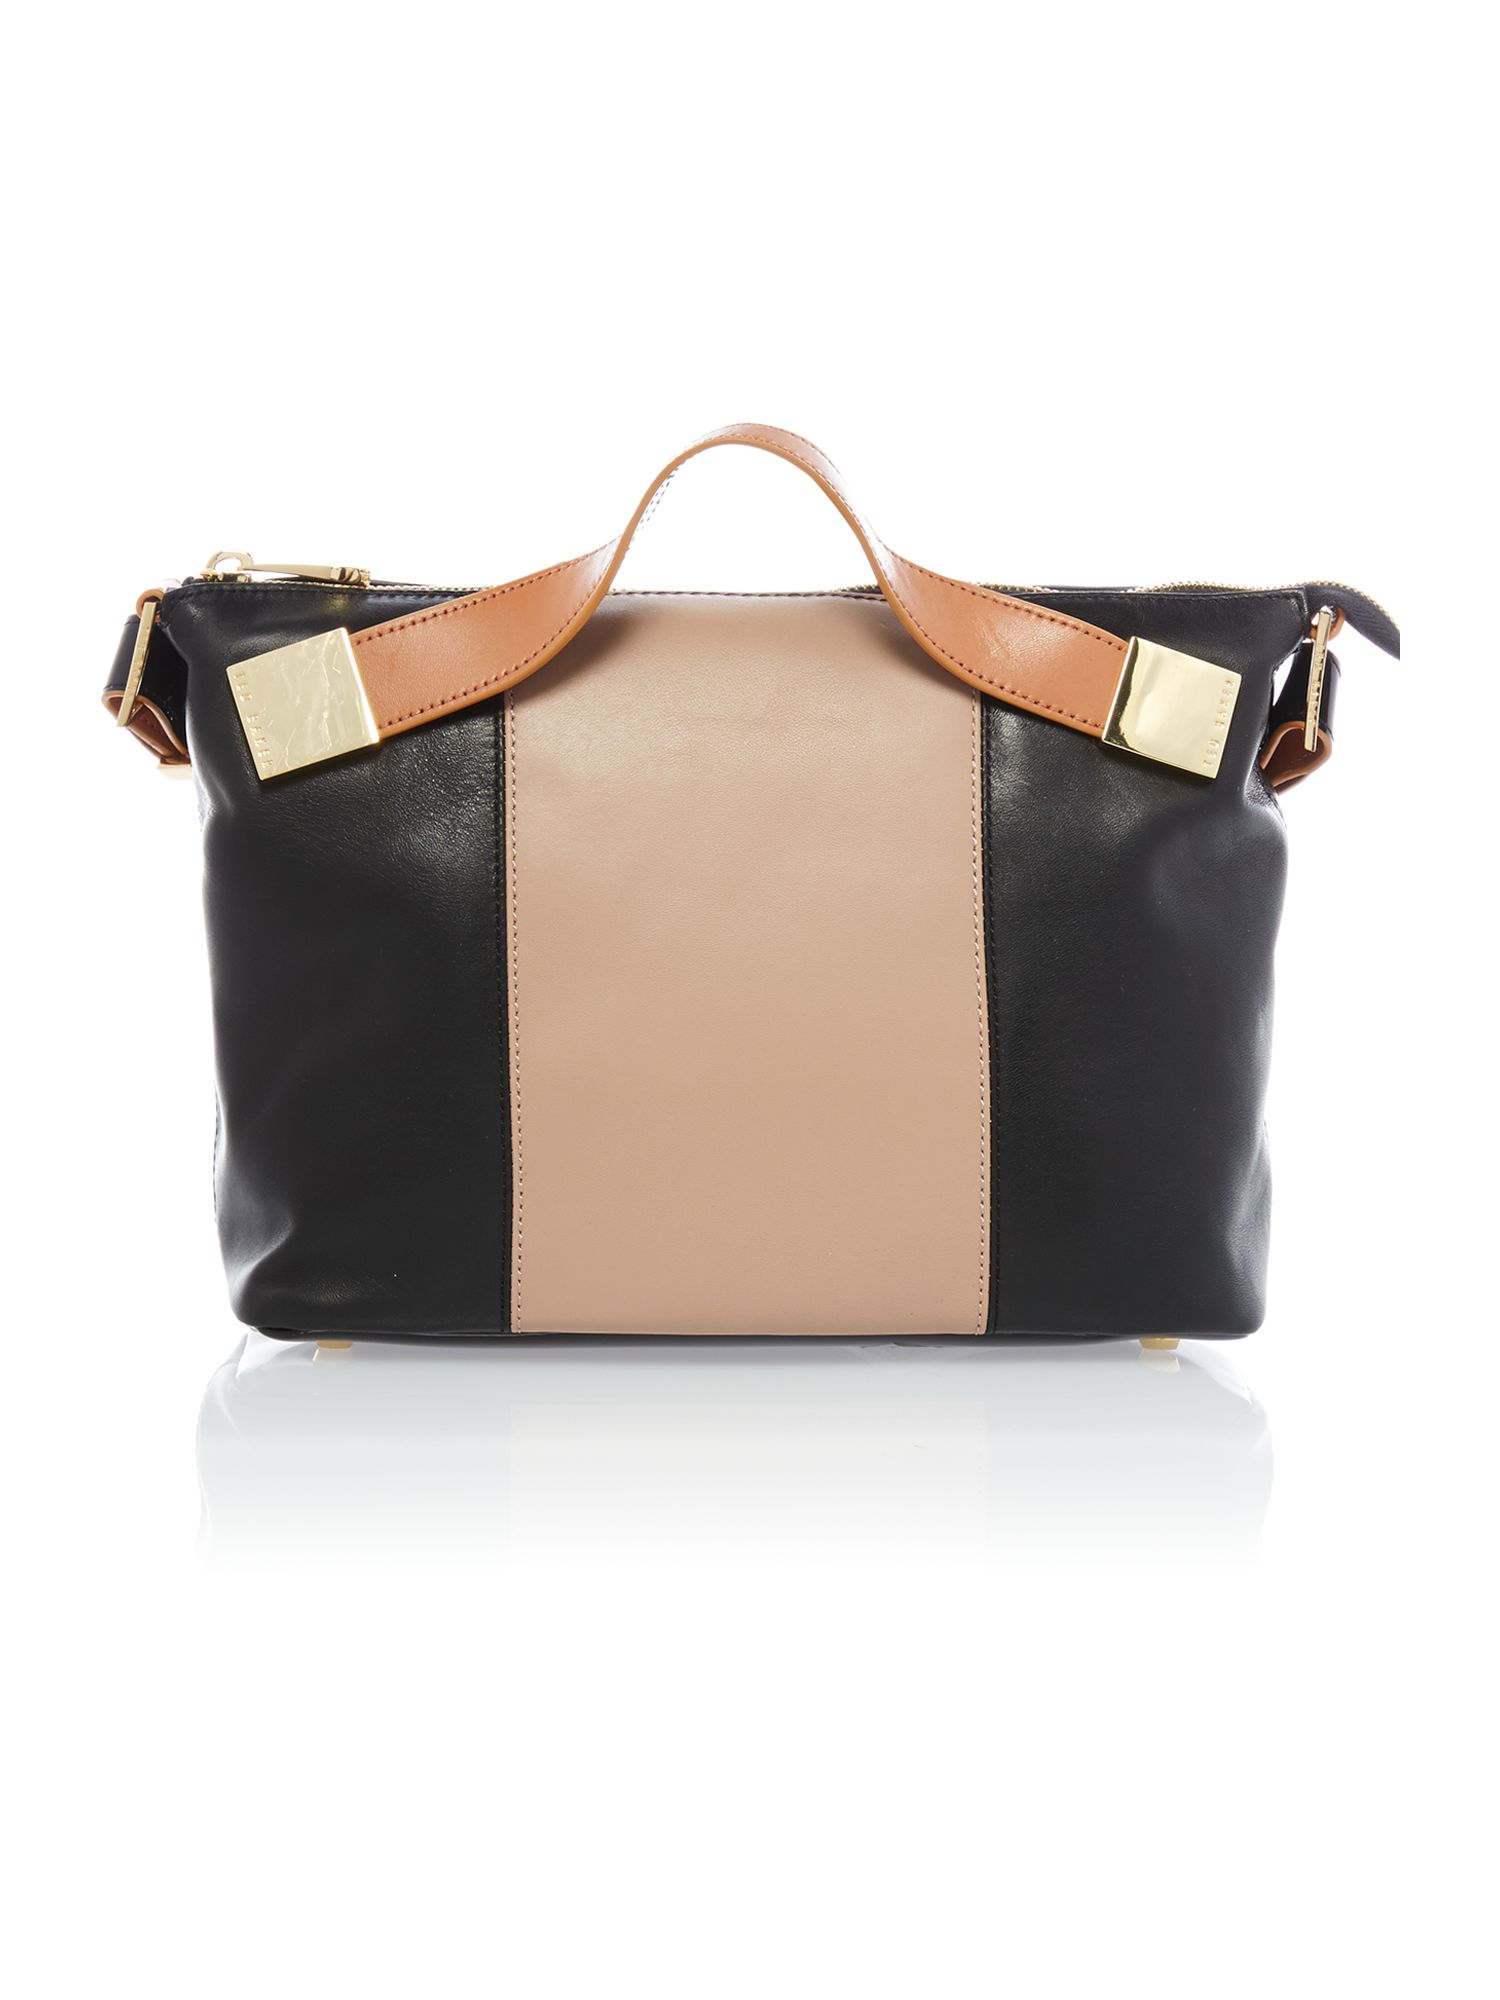 Medium nude and black tote bag